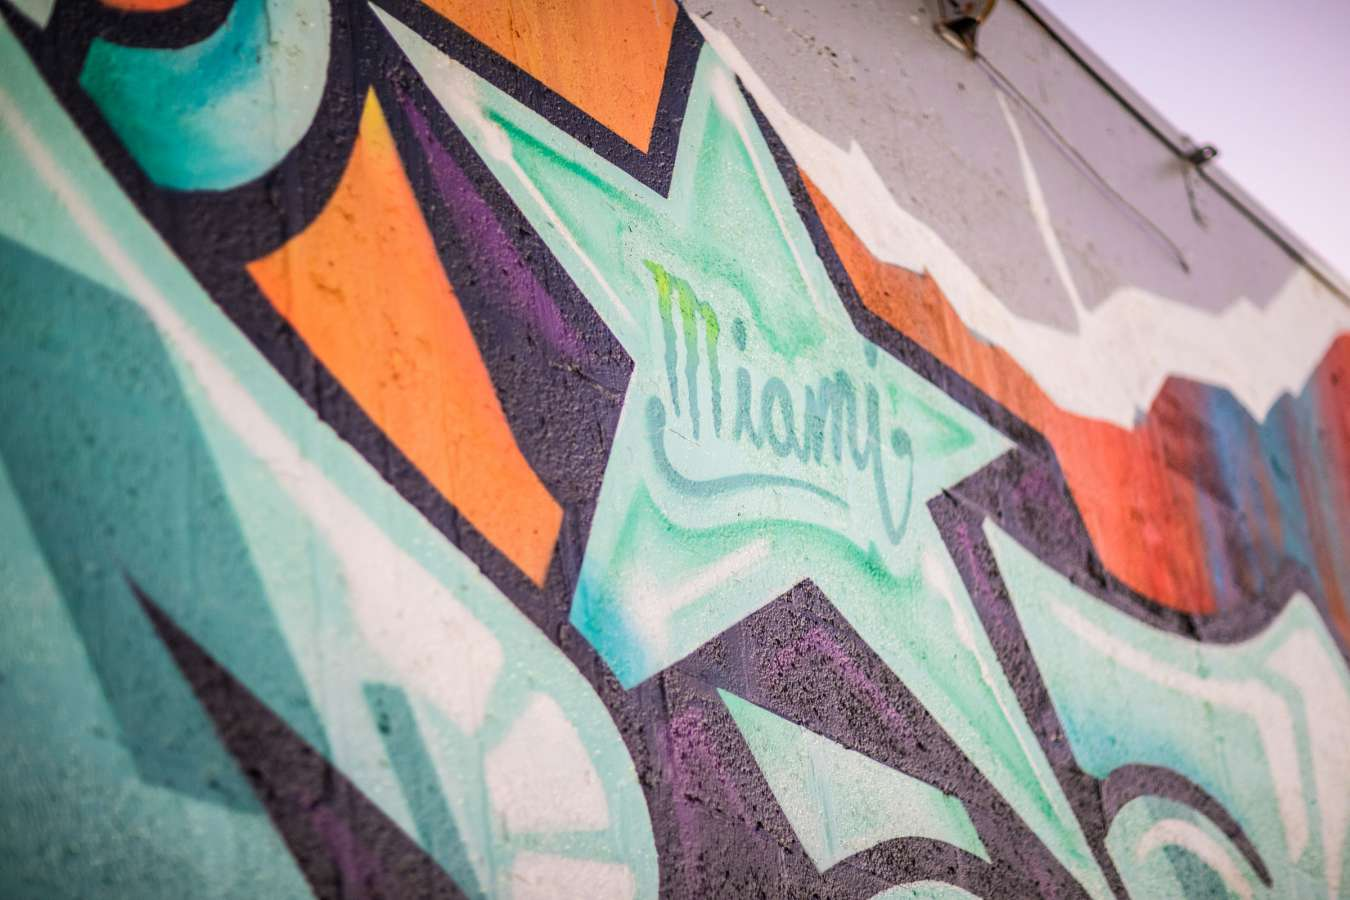 images of Risk painting his wall at Art Basel Miami